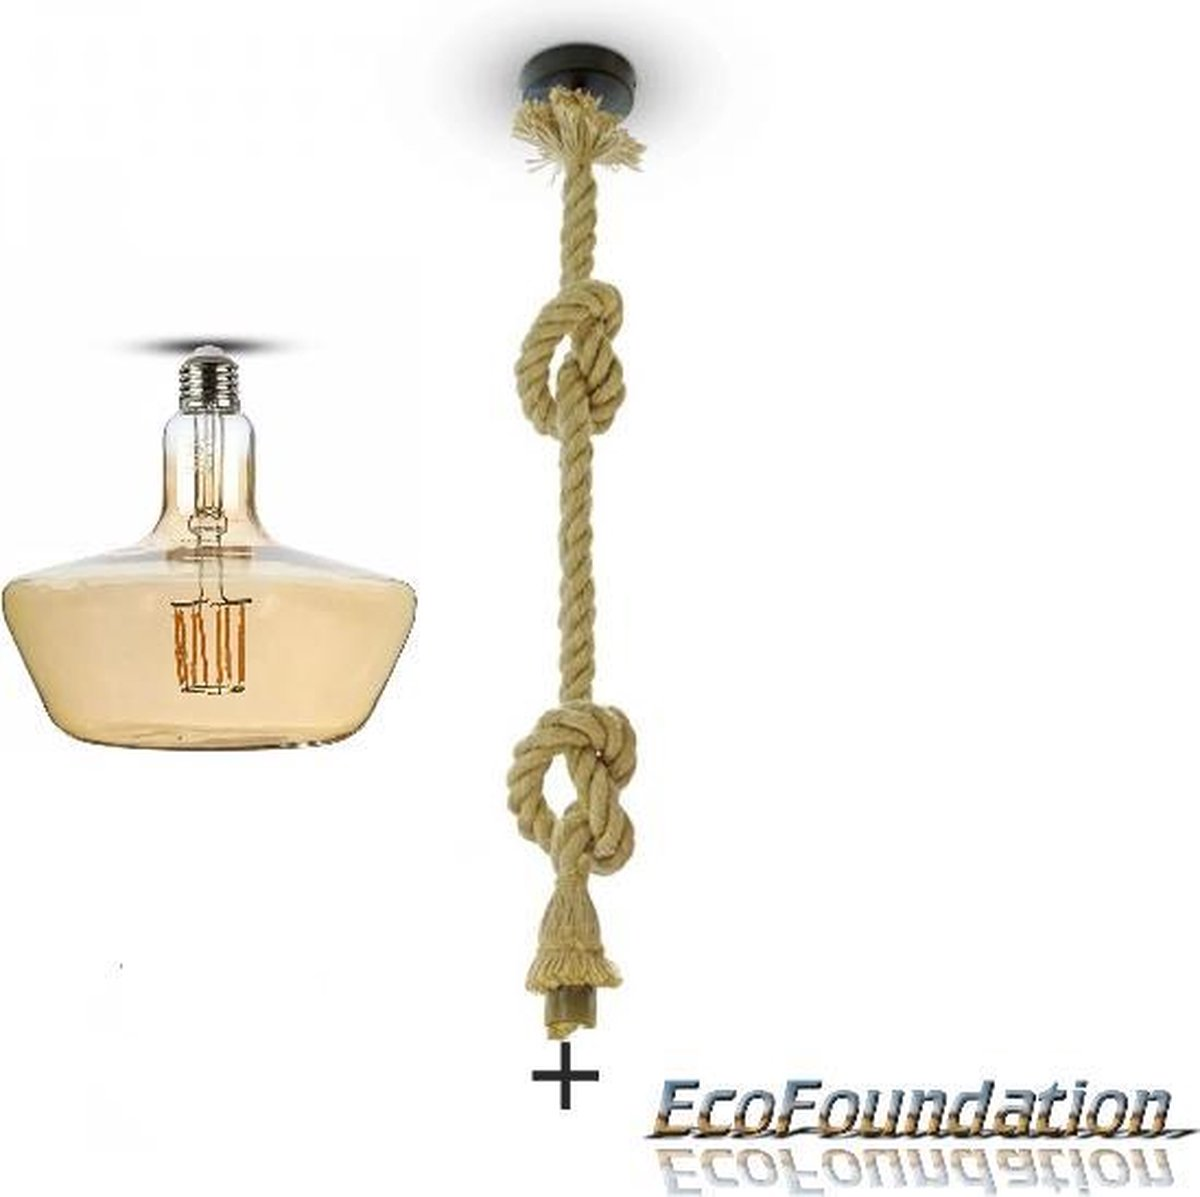 Bamboe-Touw hanglamp - 1,5 meter - E27 - Incl. design filament LED T180 in extra warm wit - 2200K